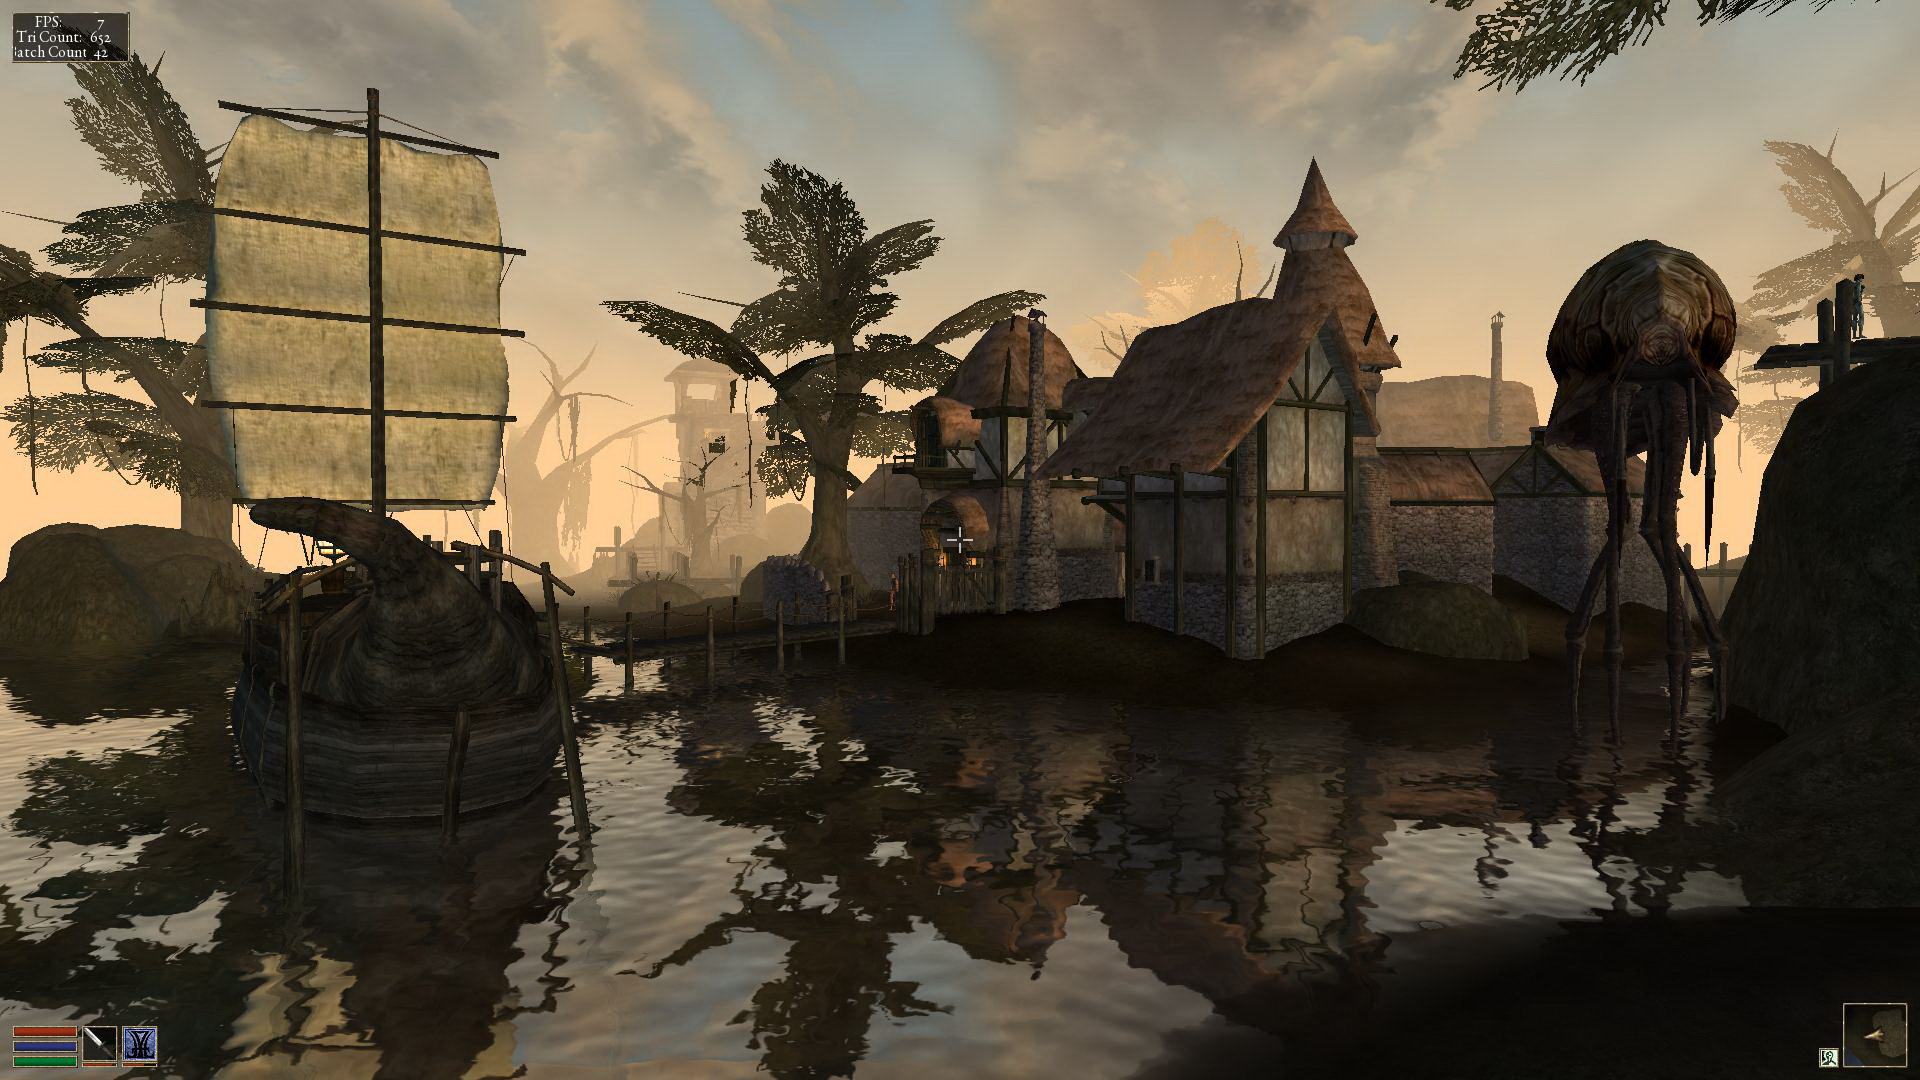 Скриншот The Elder Scrolls III: Morrowind